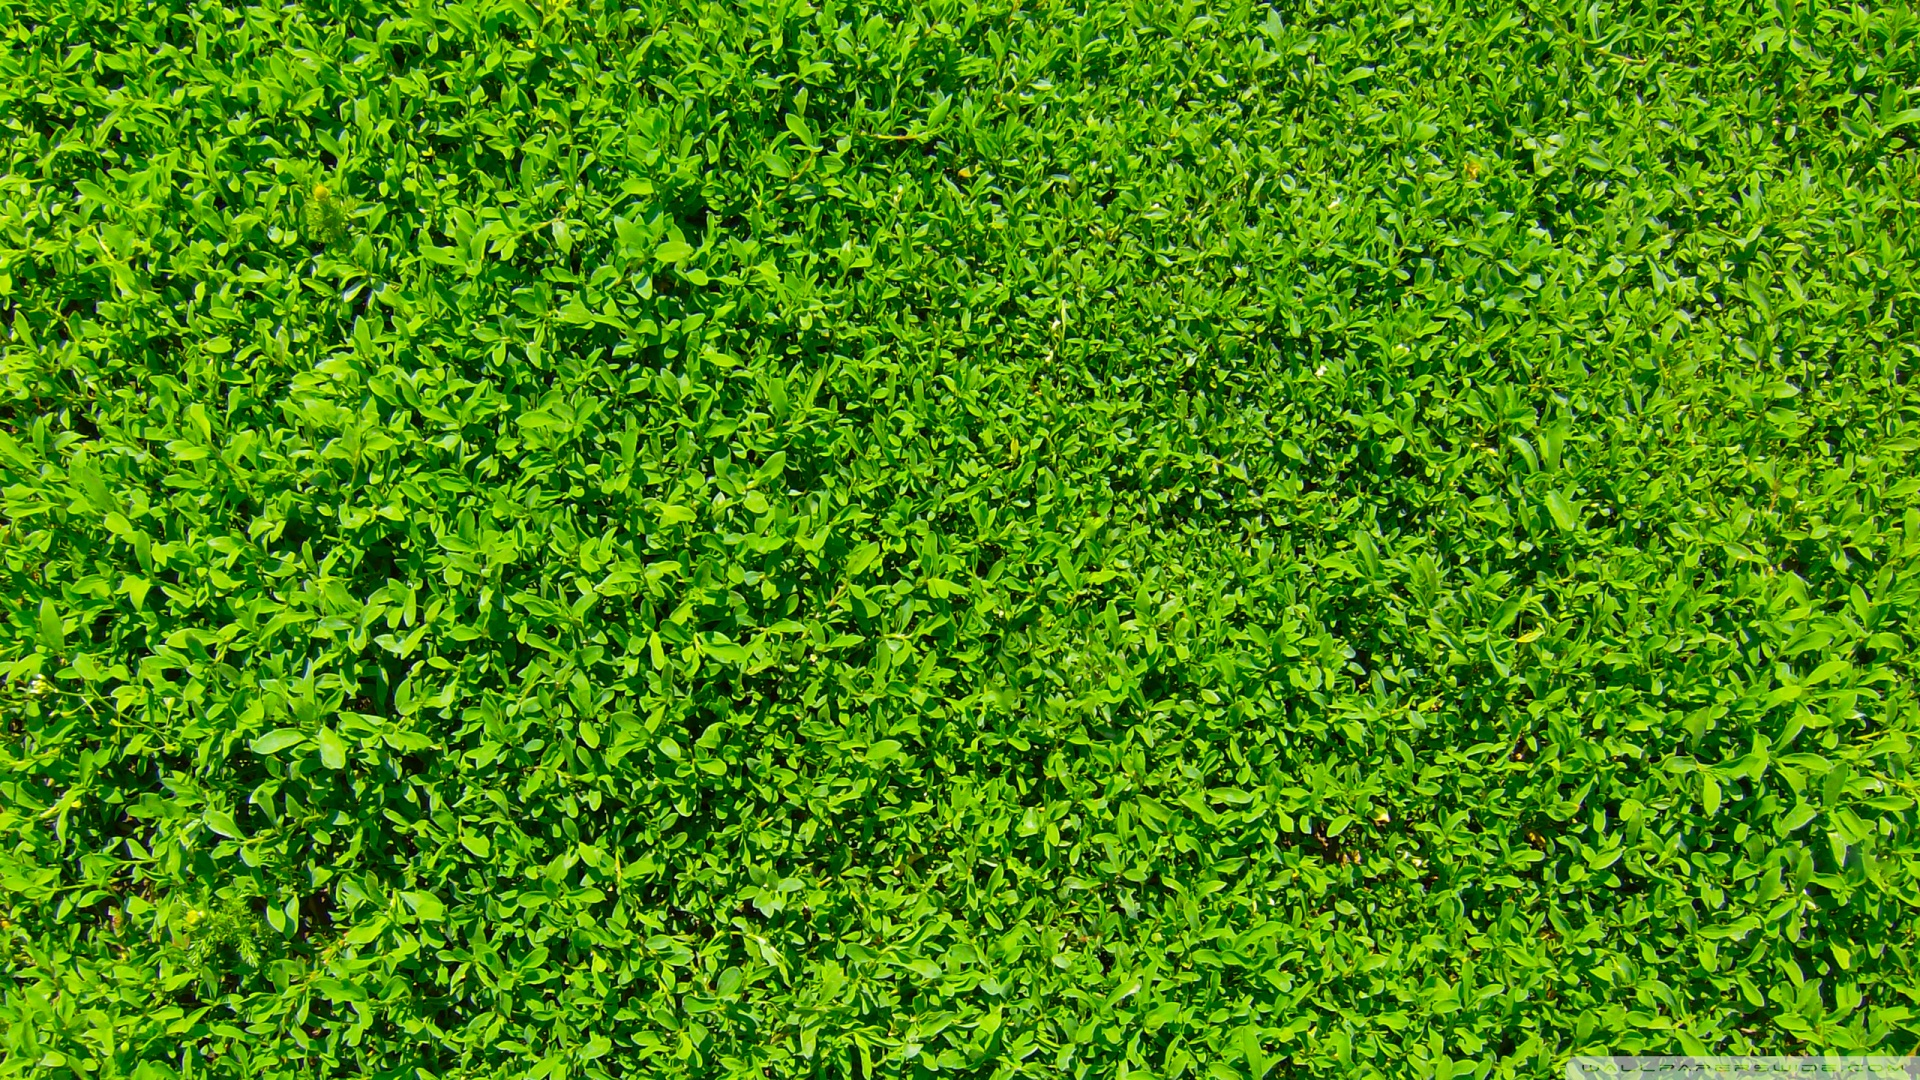 Free Download Grass Wallpaper Green Images 1920x1080 1920x1080